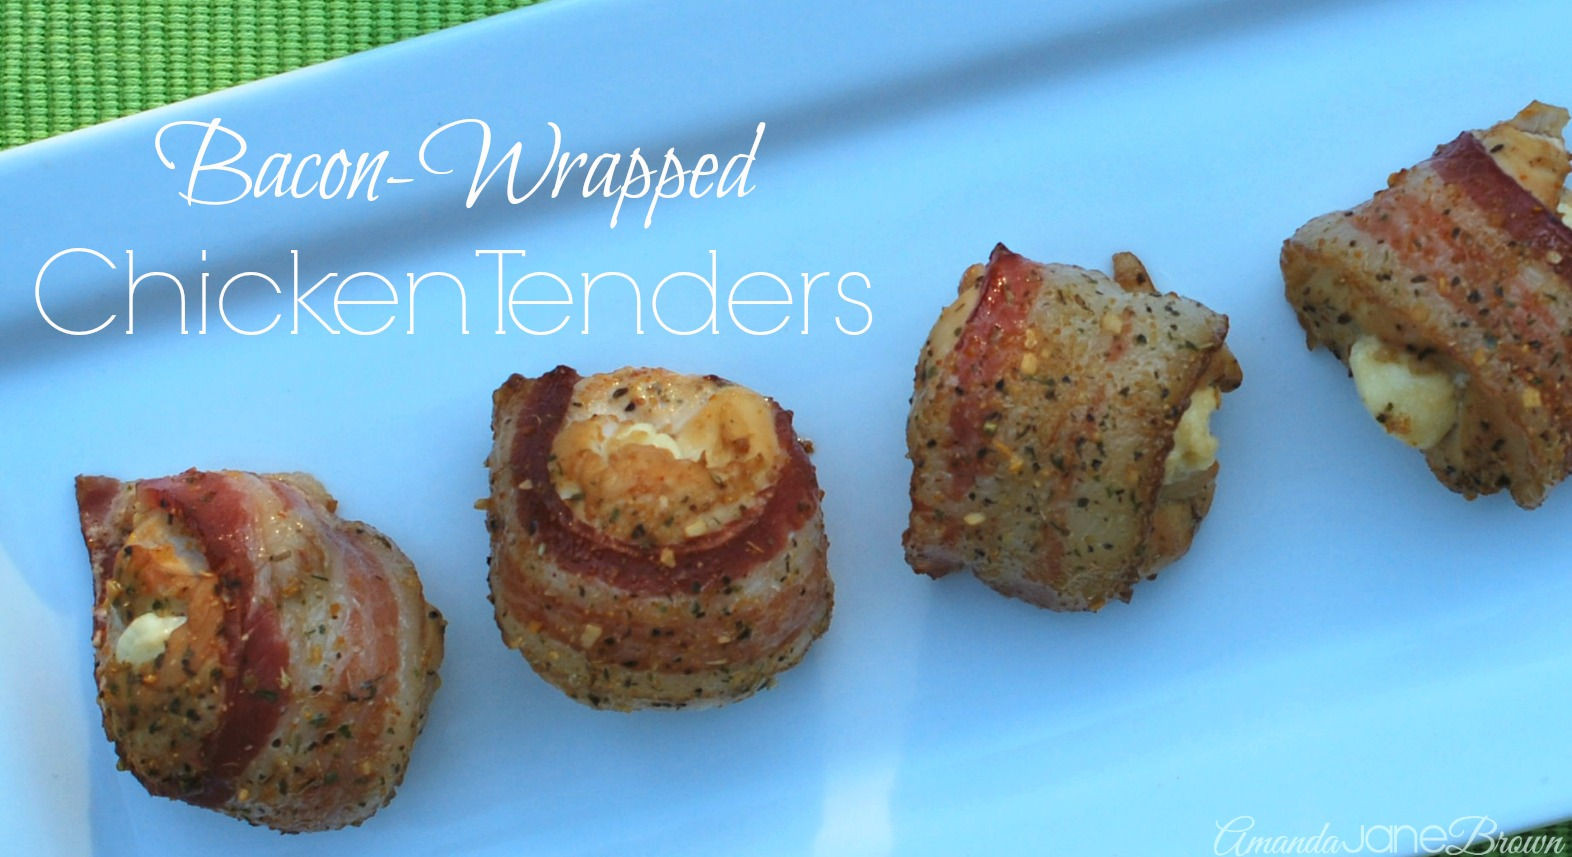 Bacon-Wrapped Chicken Tenders - Amanda Jane Brown